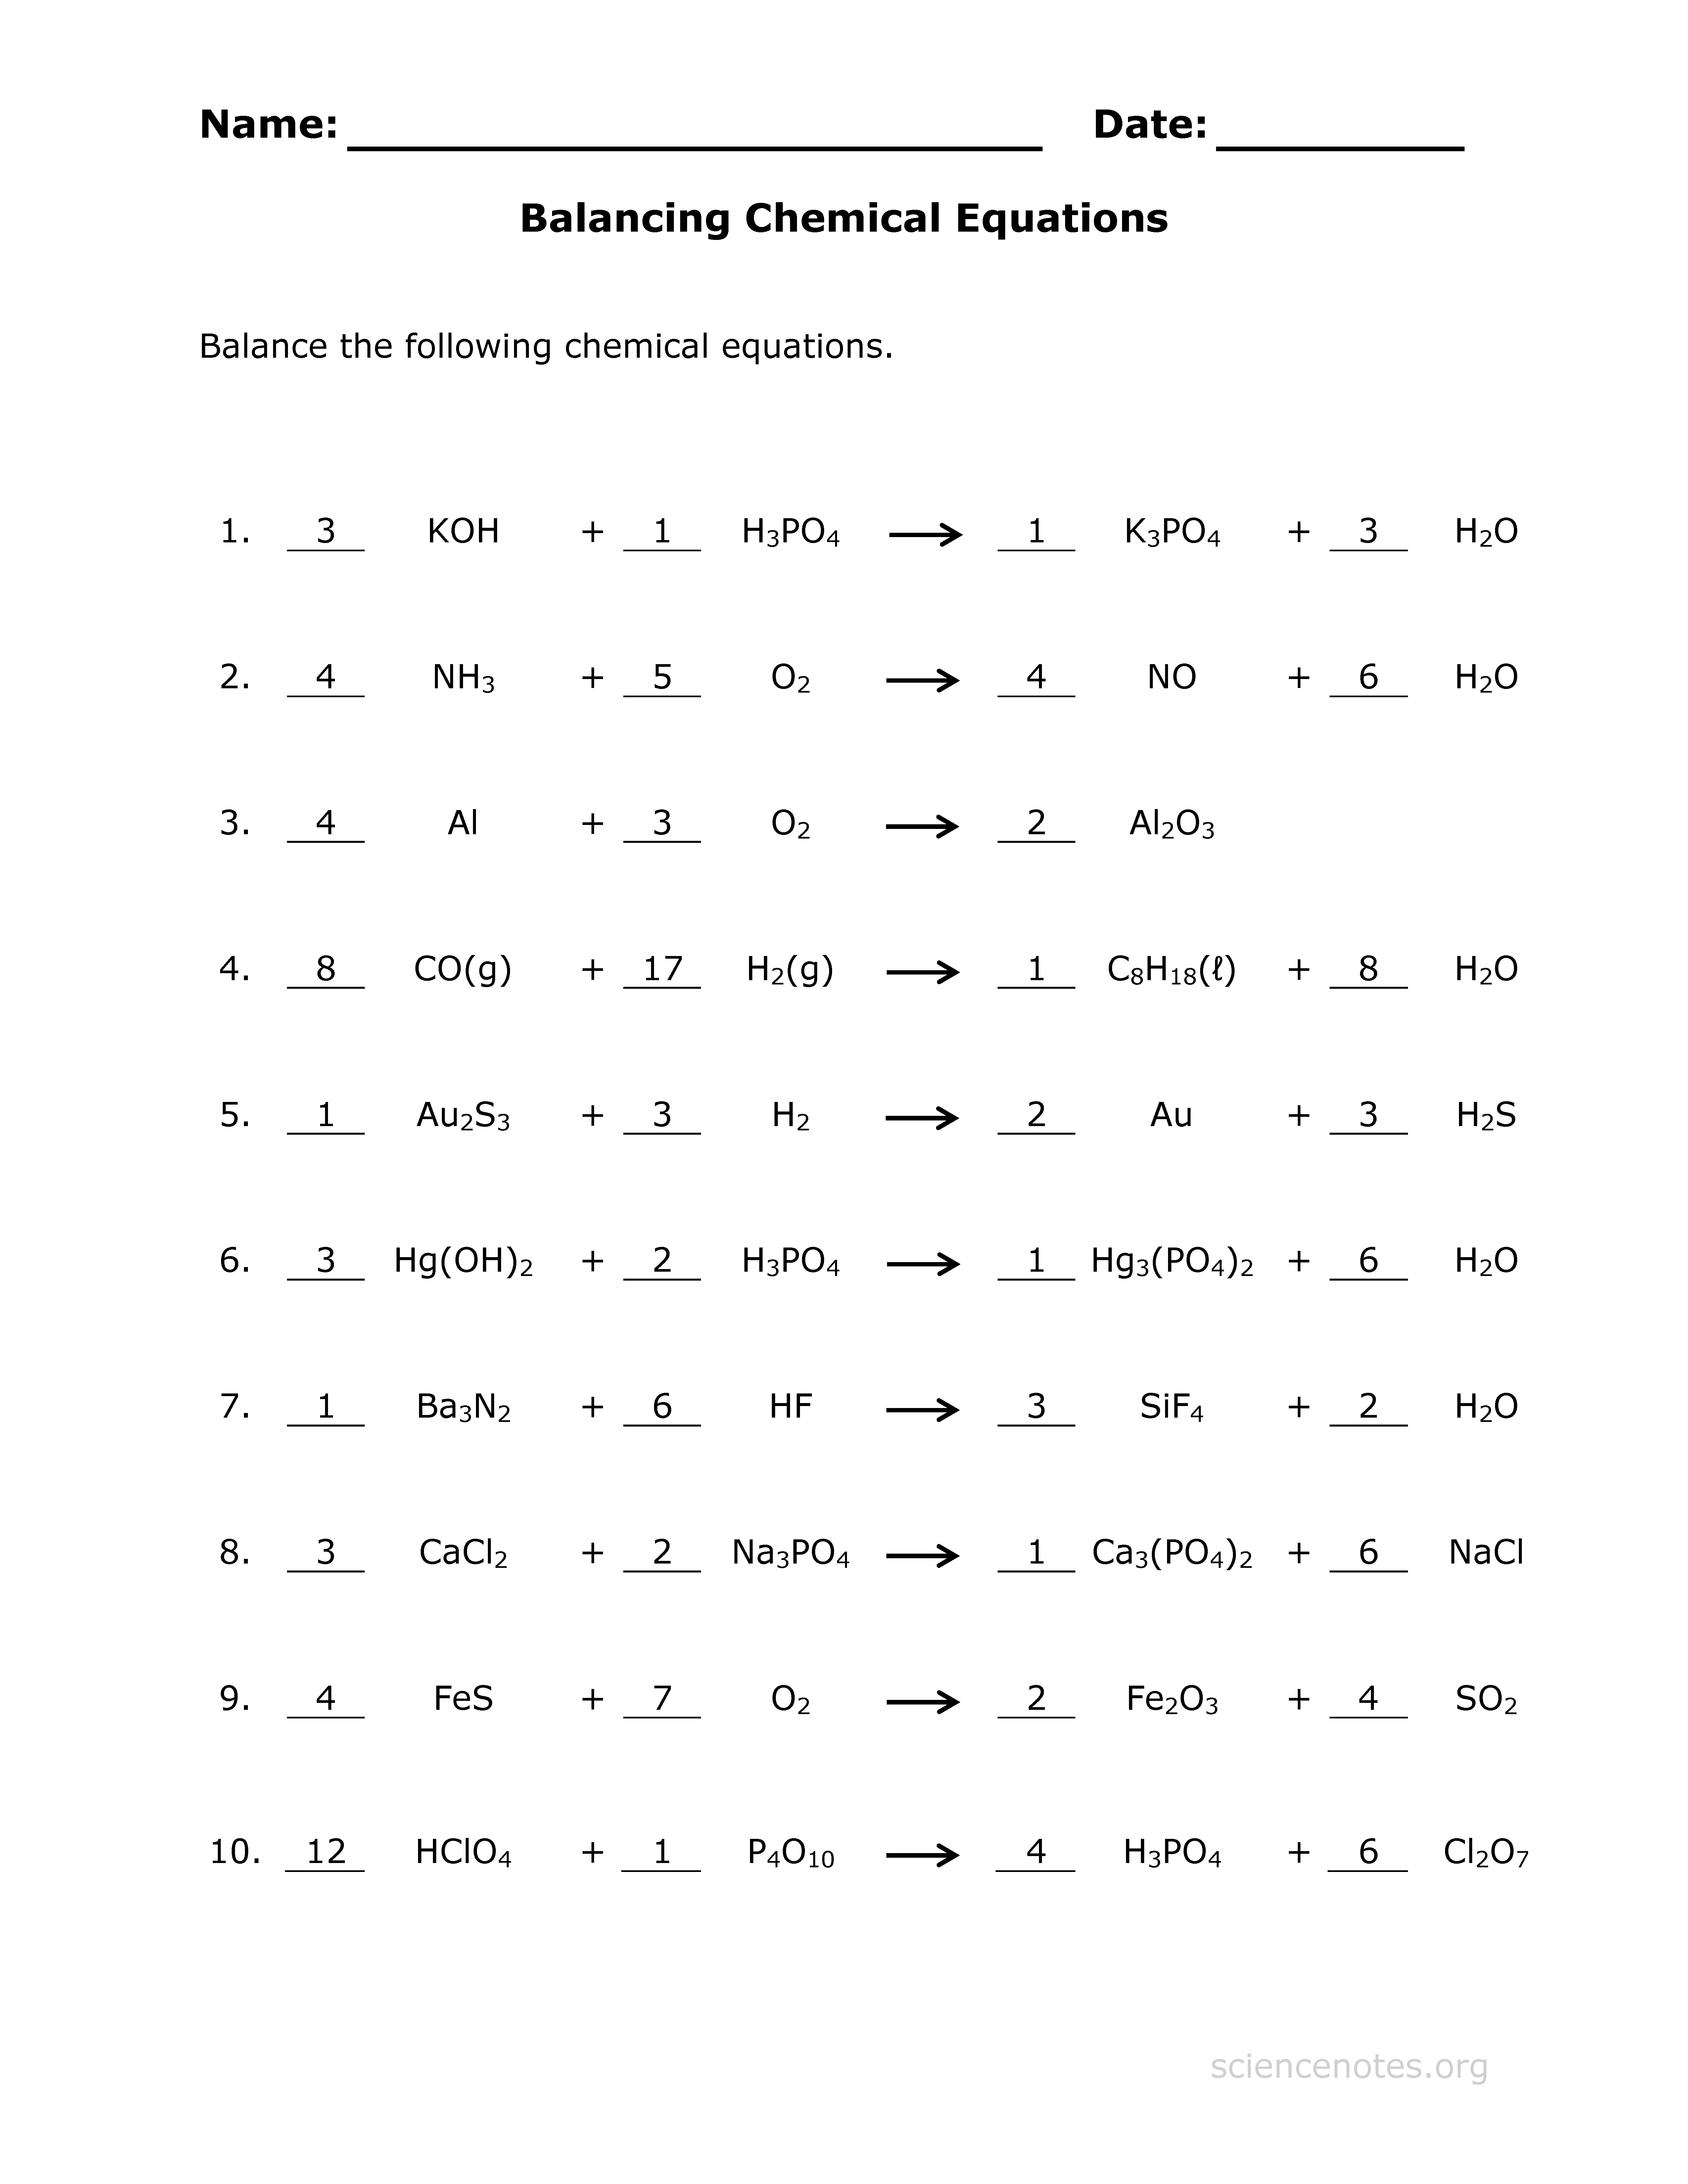 Chemistry Balancing Equations Worksheet By Dr Lyons Tpt Answer Key